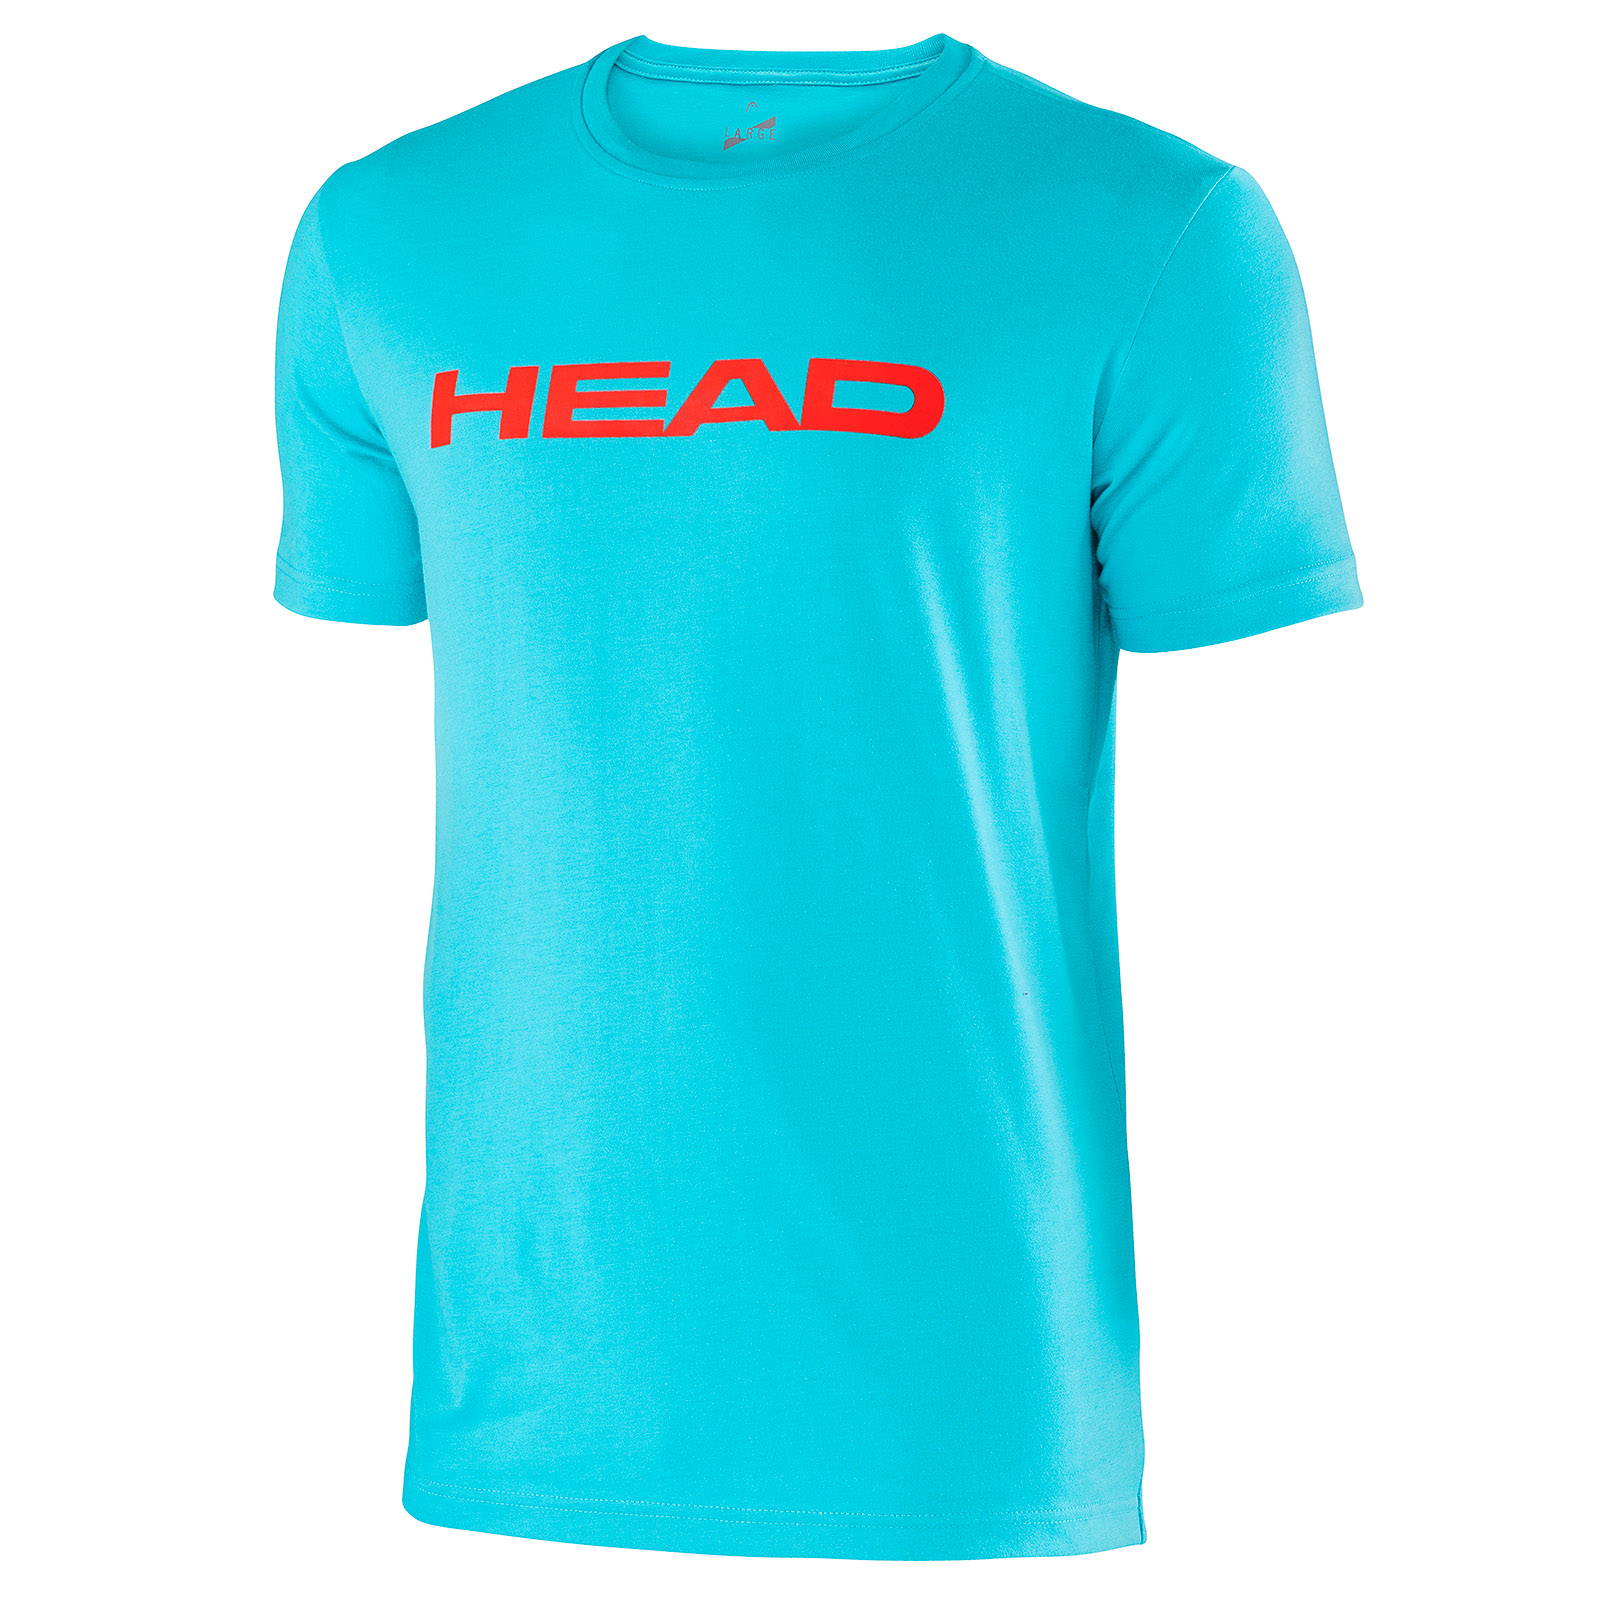 Head T-shirt - Ivan JR Turquoise Boy 164